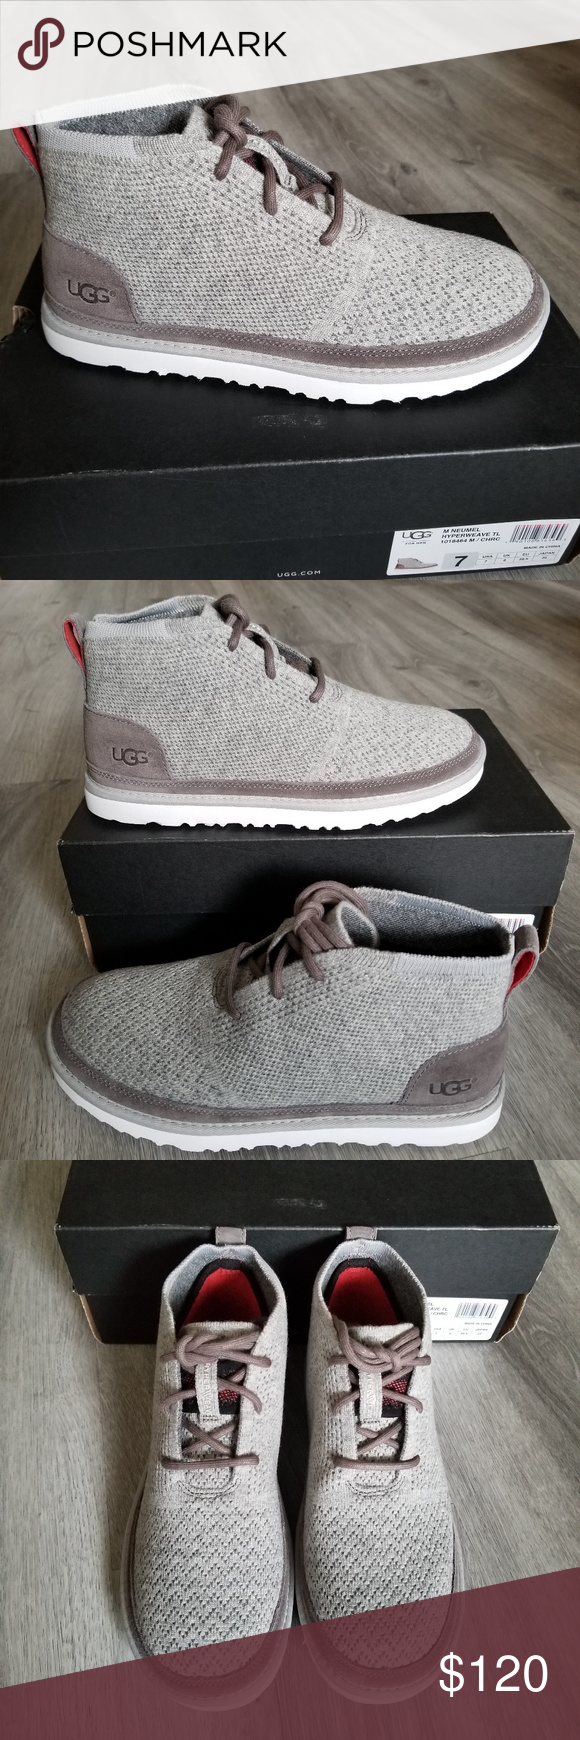 b9a349a1460 UGG Neumel Hyperweave TL Shoes. NEW UGG Neumel Hyperweave TL Shoes ...